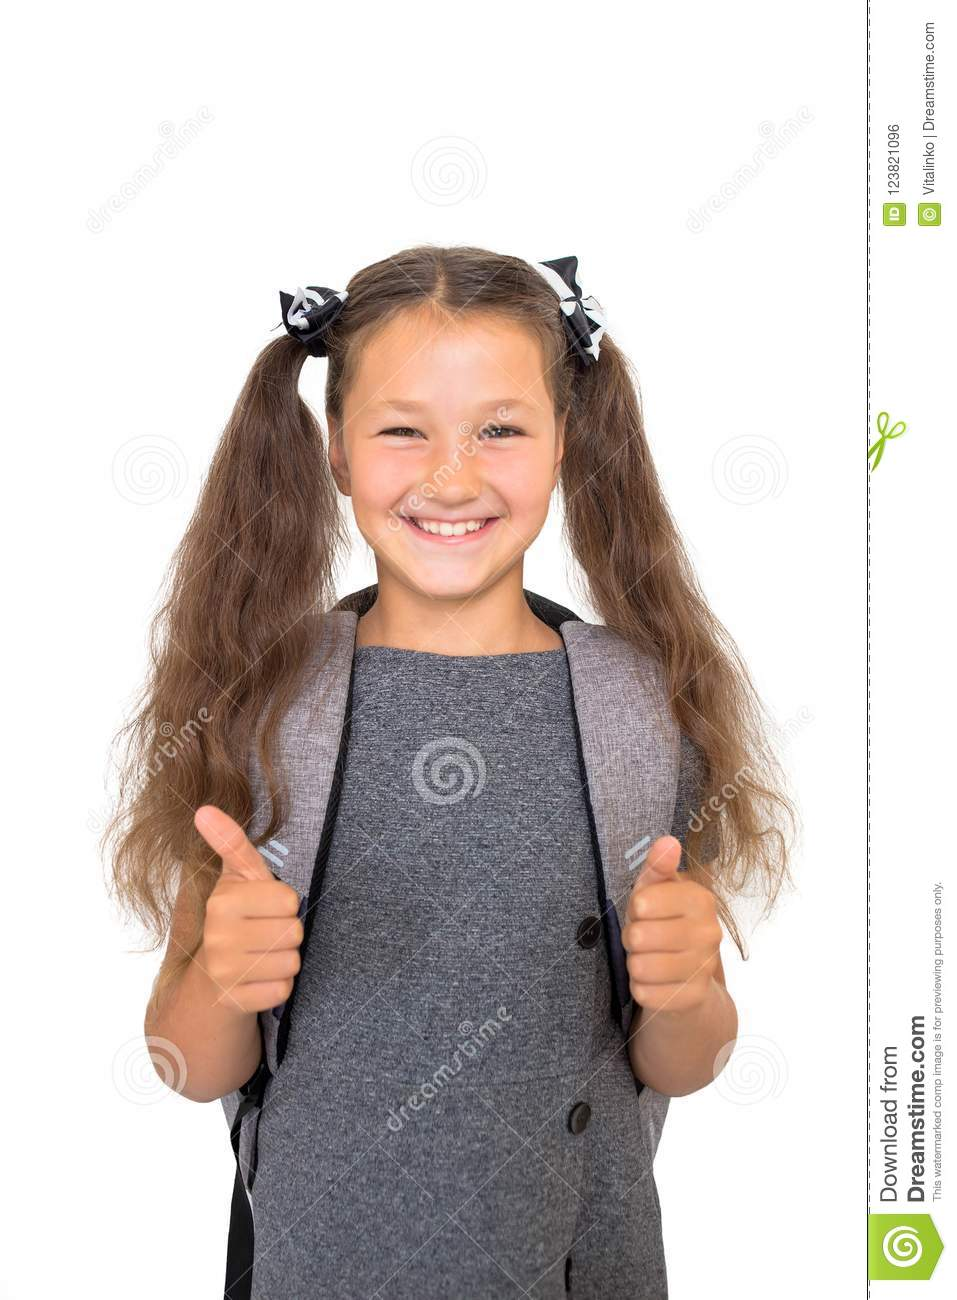 Schoolchild shows a thumb up.